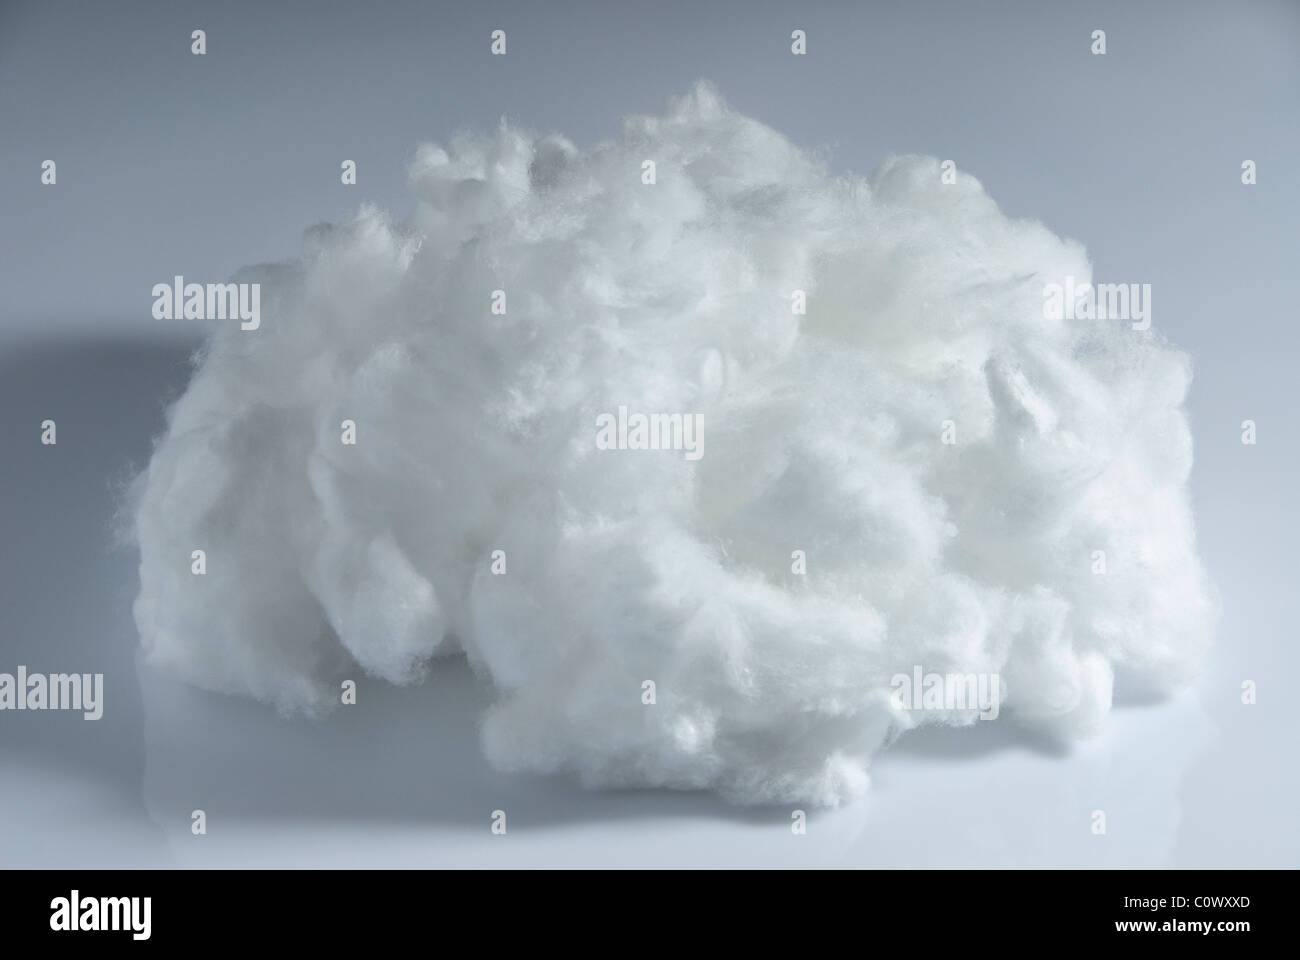 A wad of cotton wool. - Stock Image